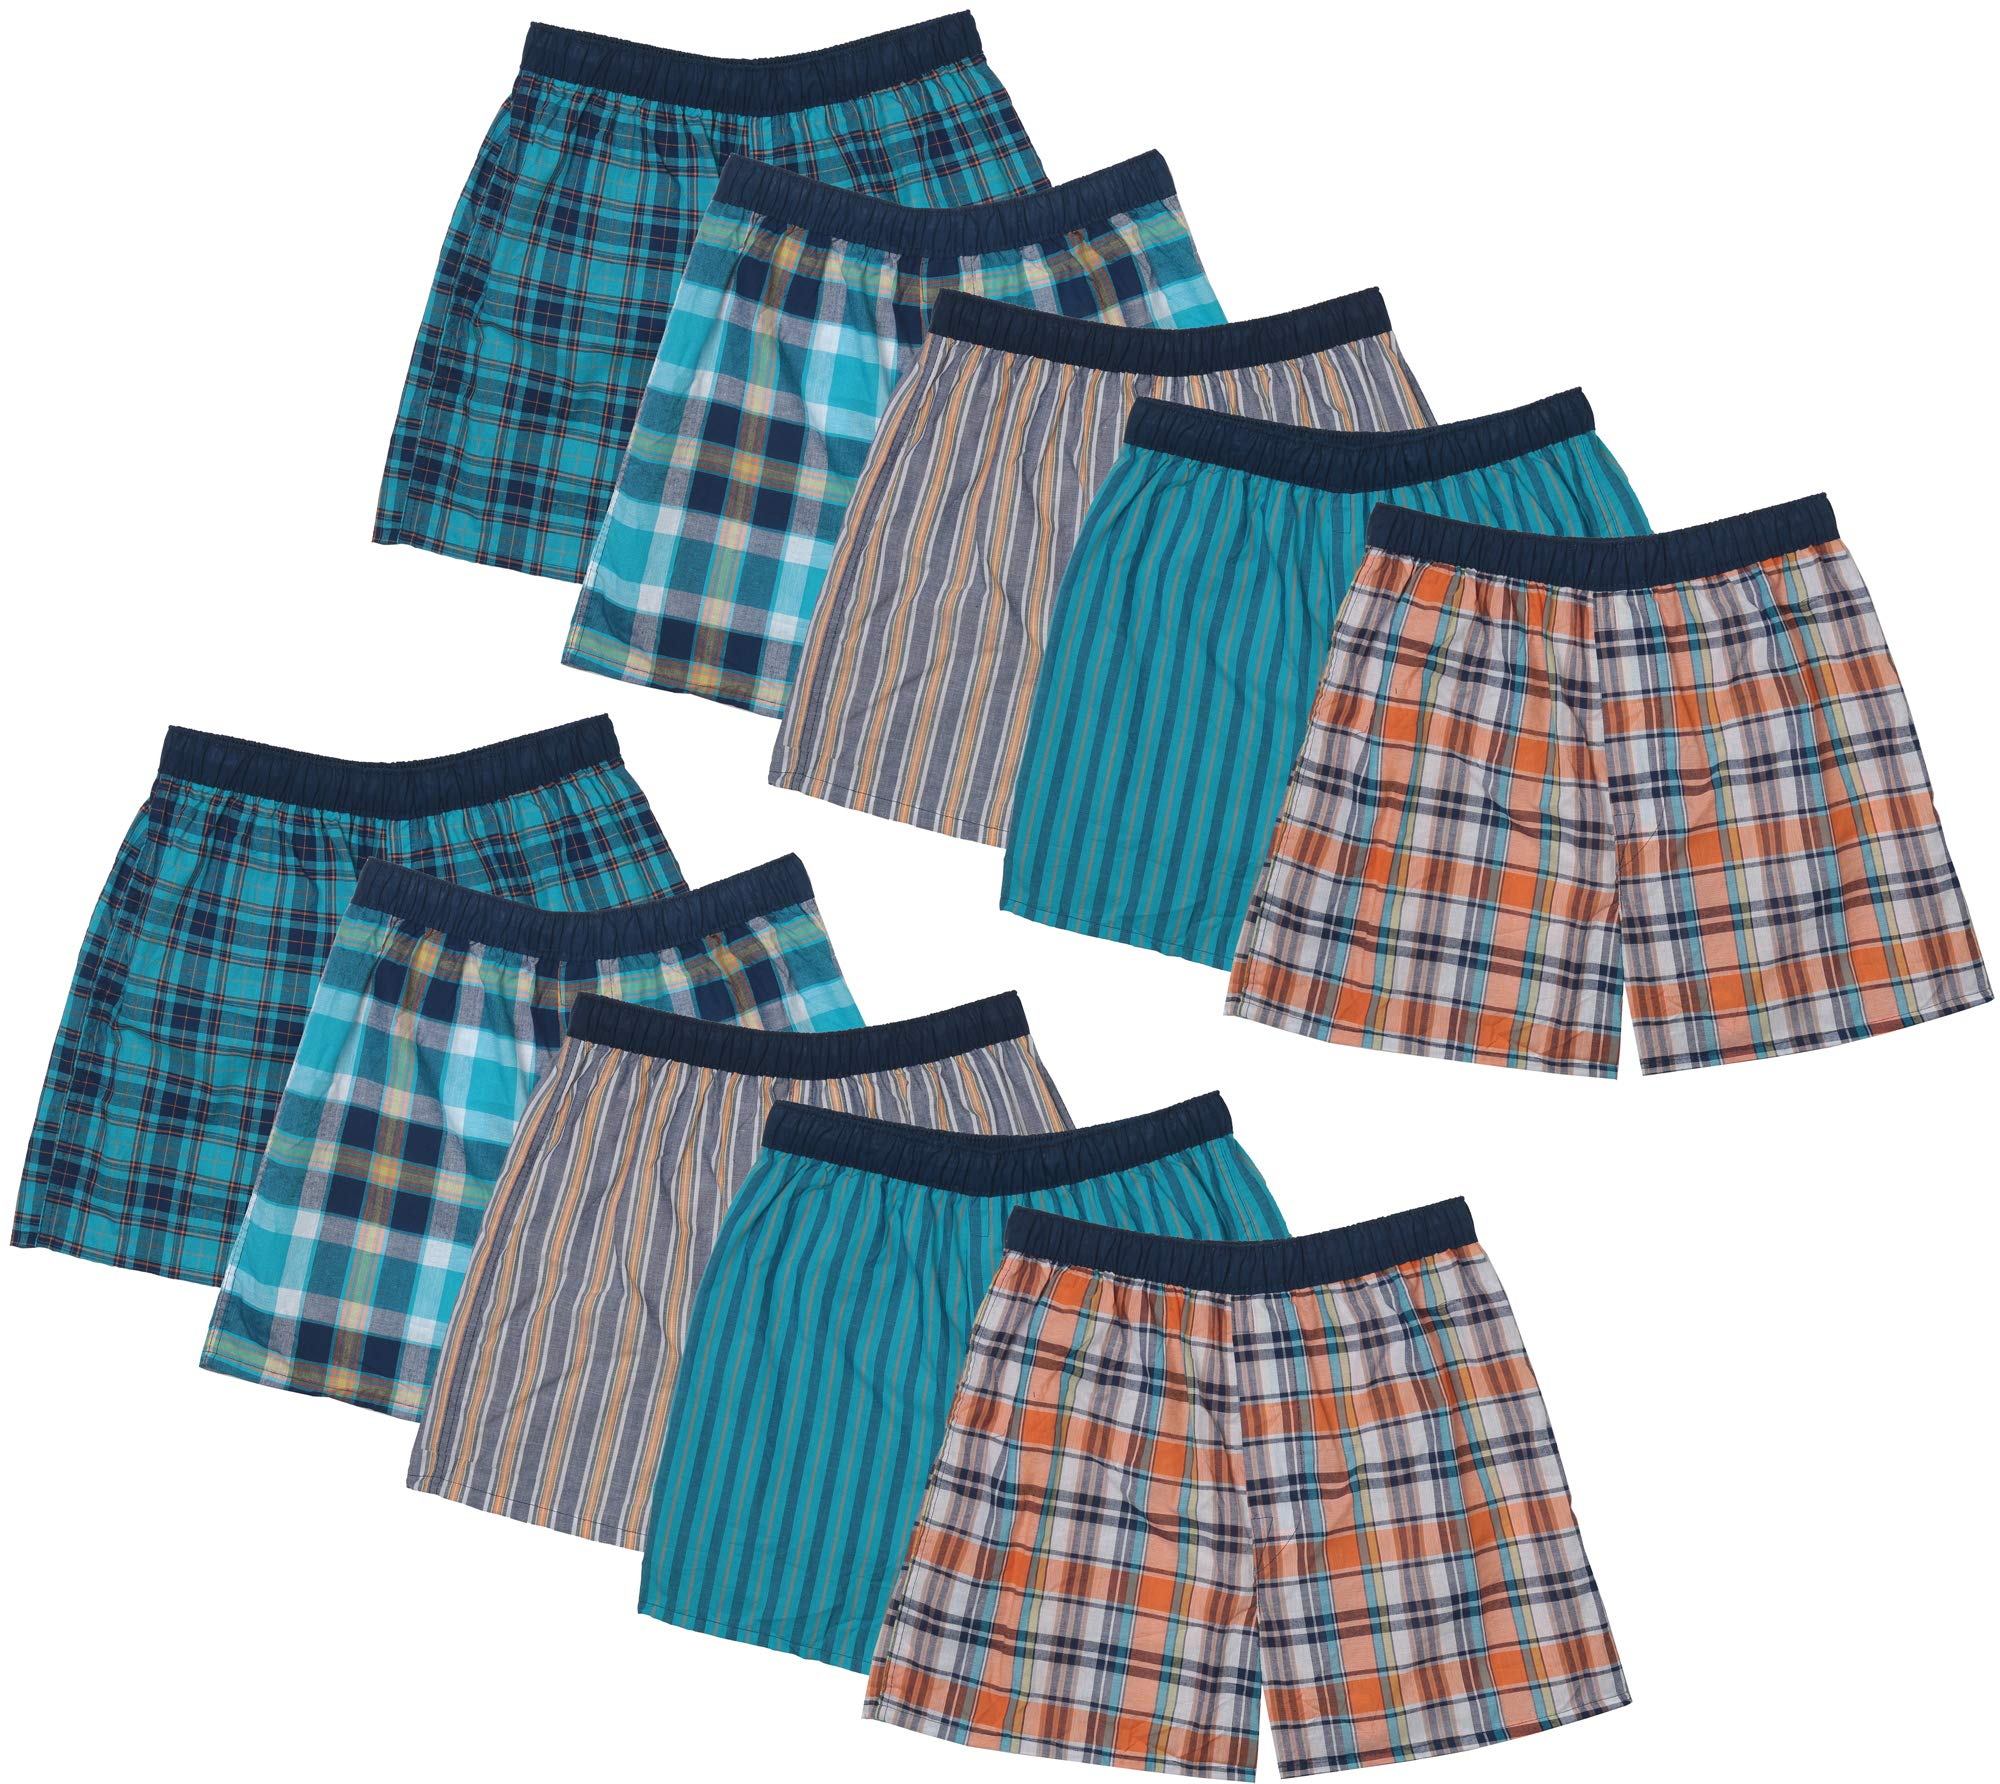 Fruit of the Loom Boys' Woven Boxer 10-Pack, Assorted, Small